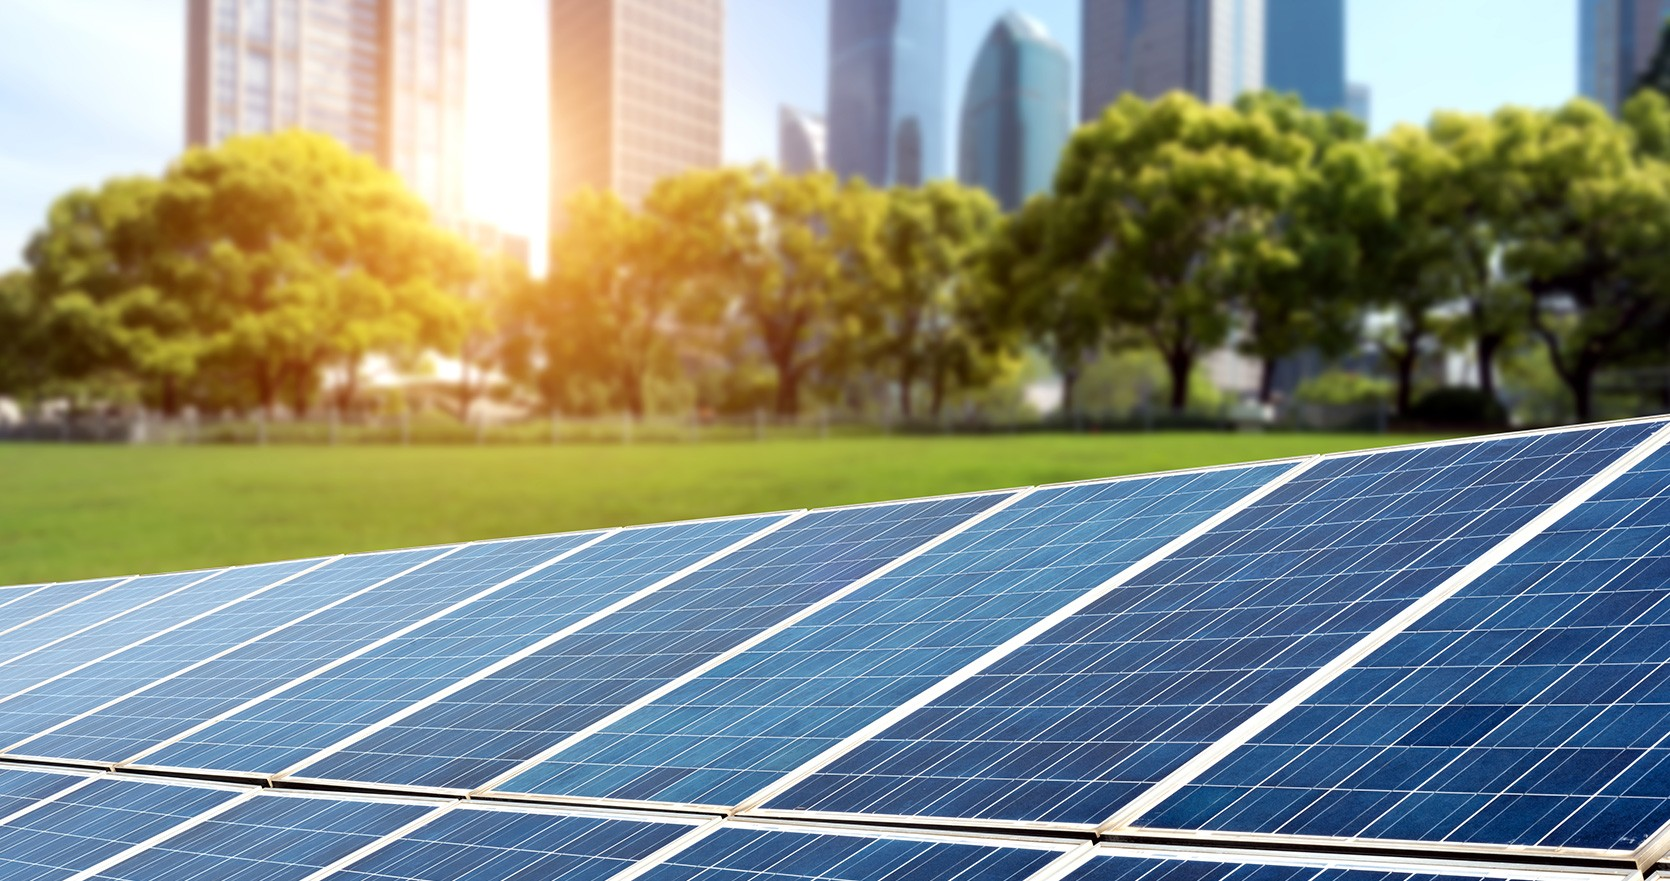 Commercial / Industrial Solar Solutions